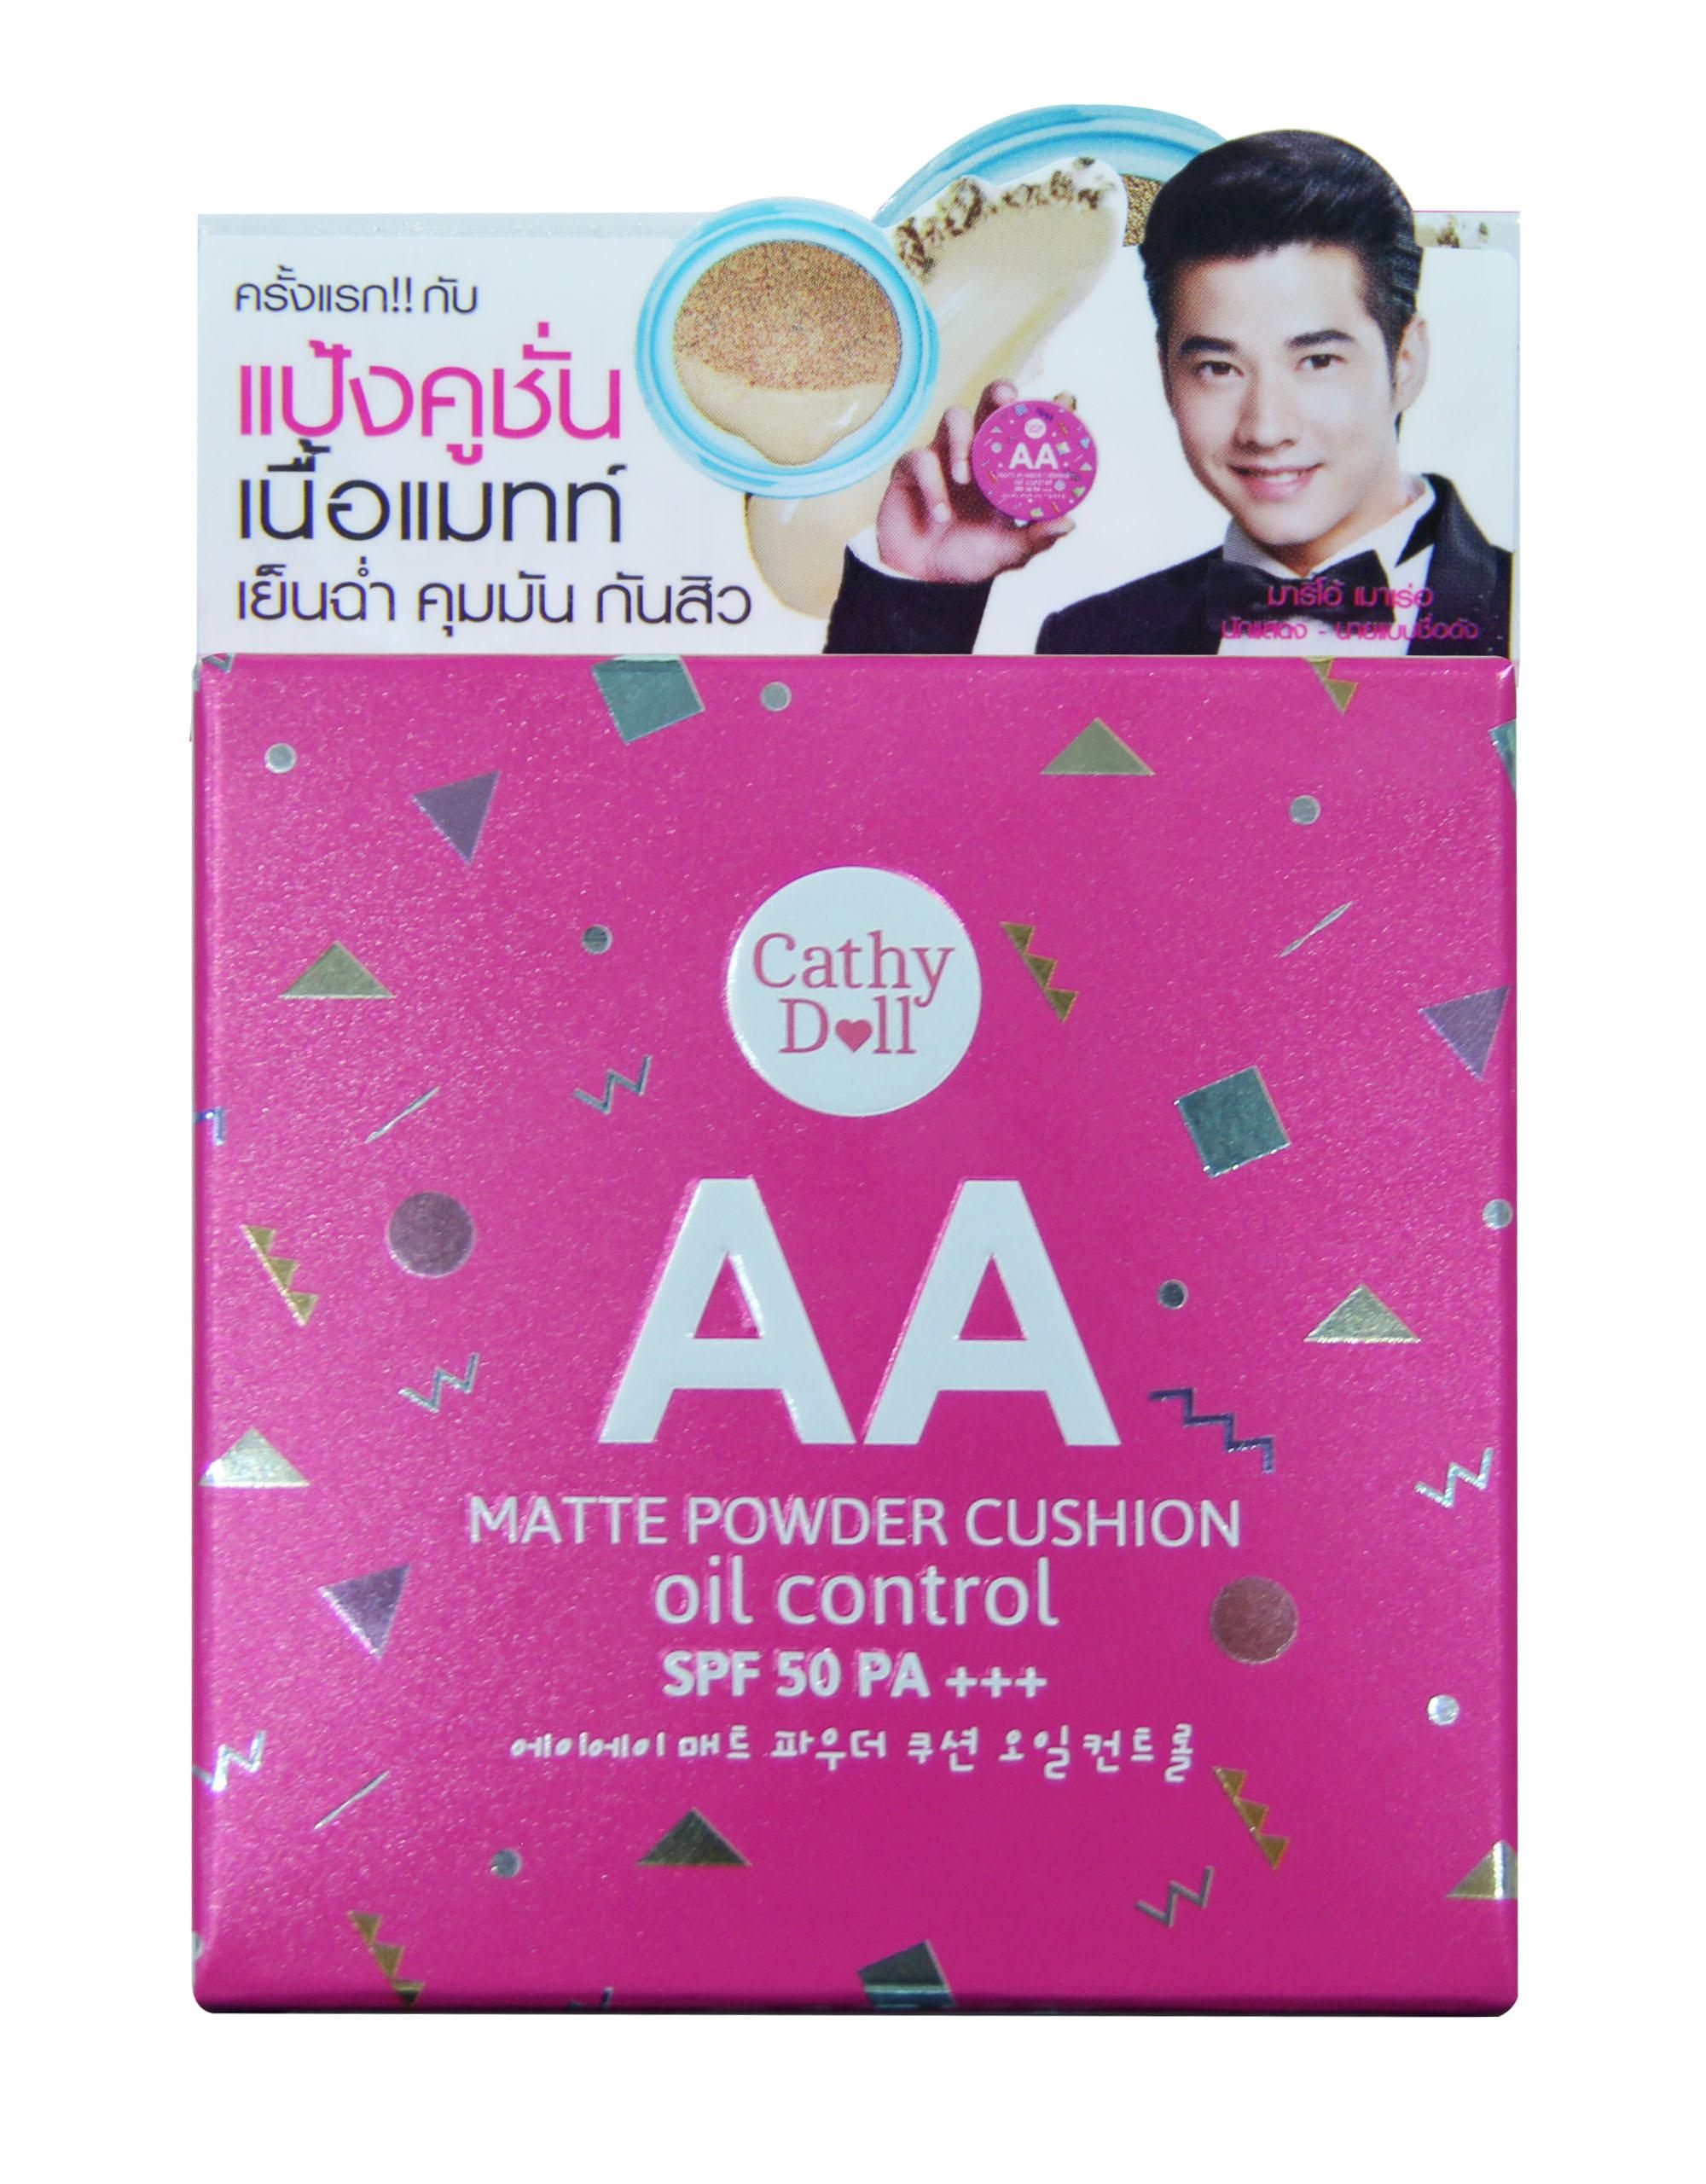 CATHY DOLL AA Matte Powder Cushion Oil Control SPF50 PA+++ 6g Cathy Doll (M) #23 Natural Beige Philippines